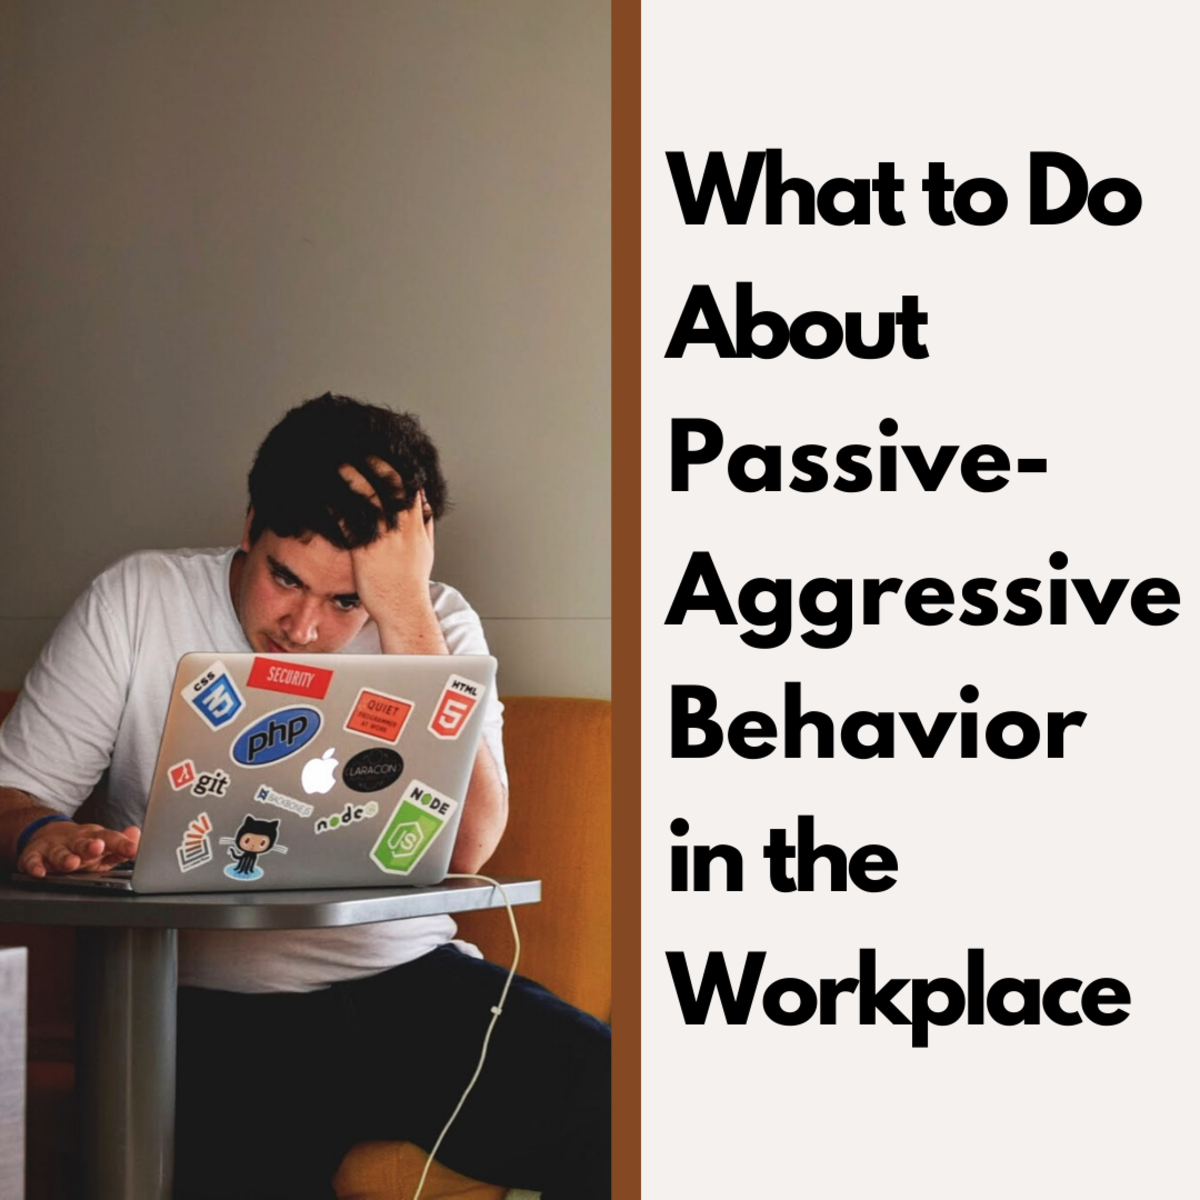 Read on to learn how to recognize and deal with passive-aggressive behavior in the workplace.